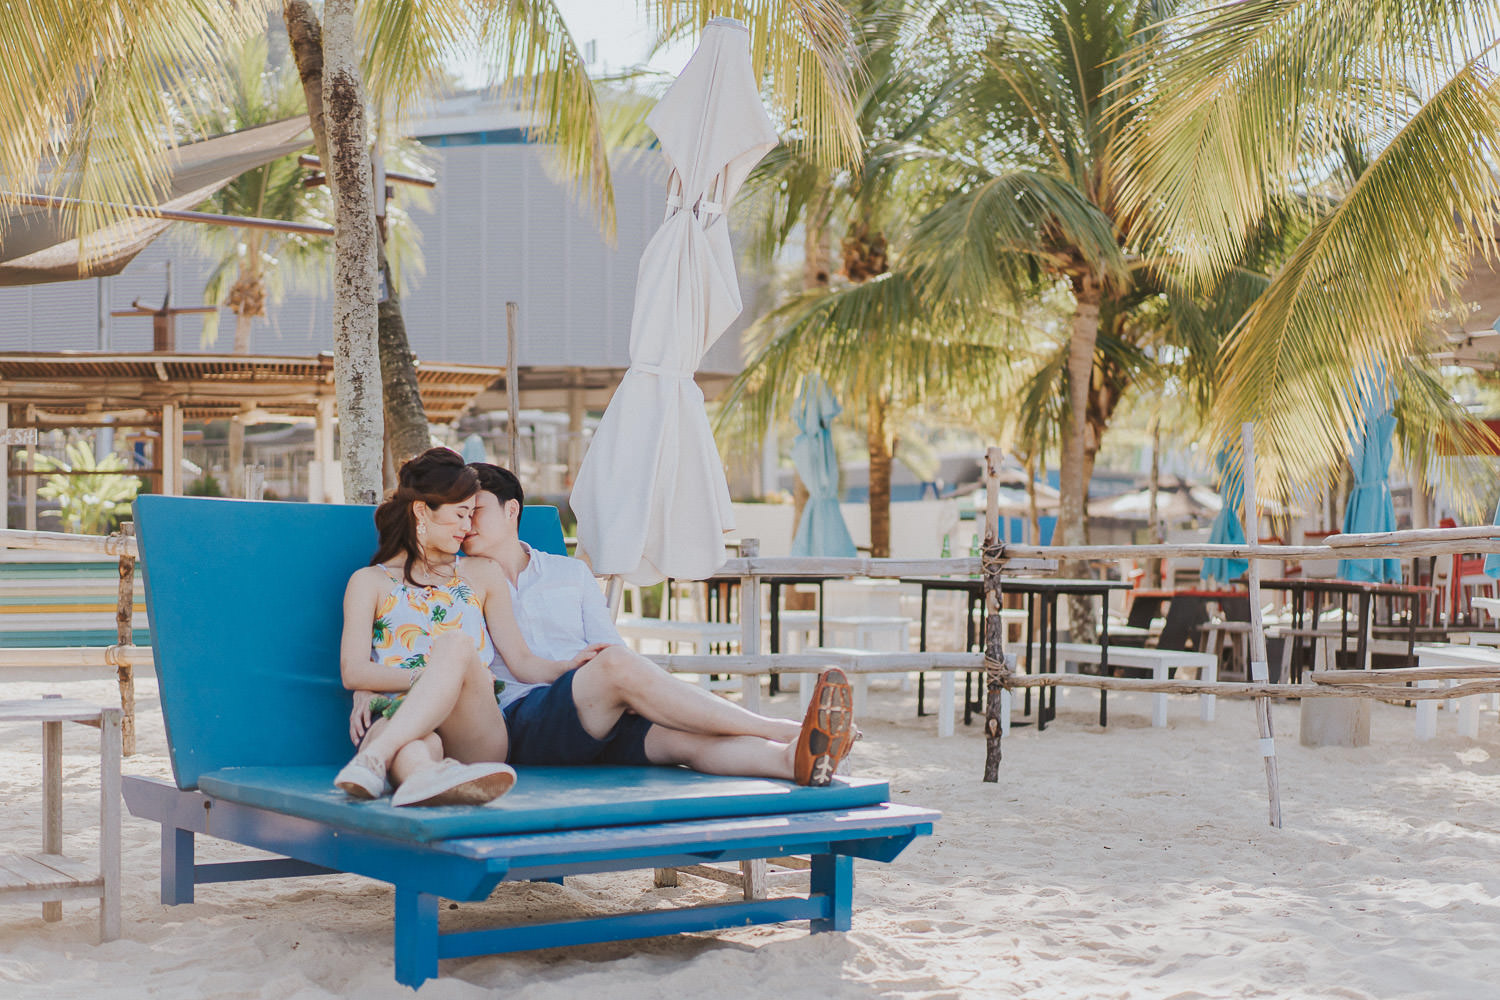 nicole and ping on a day bed at sentosa taking an engagement photo